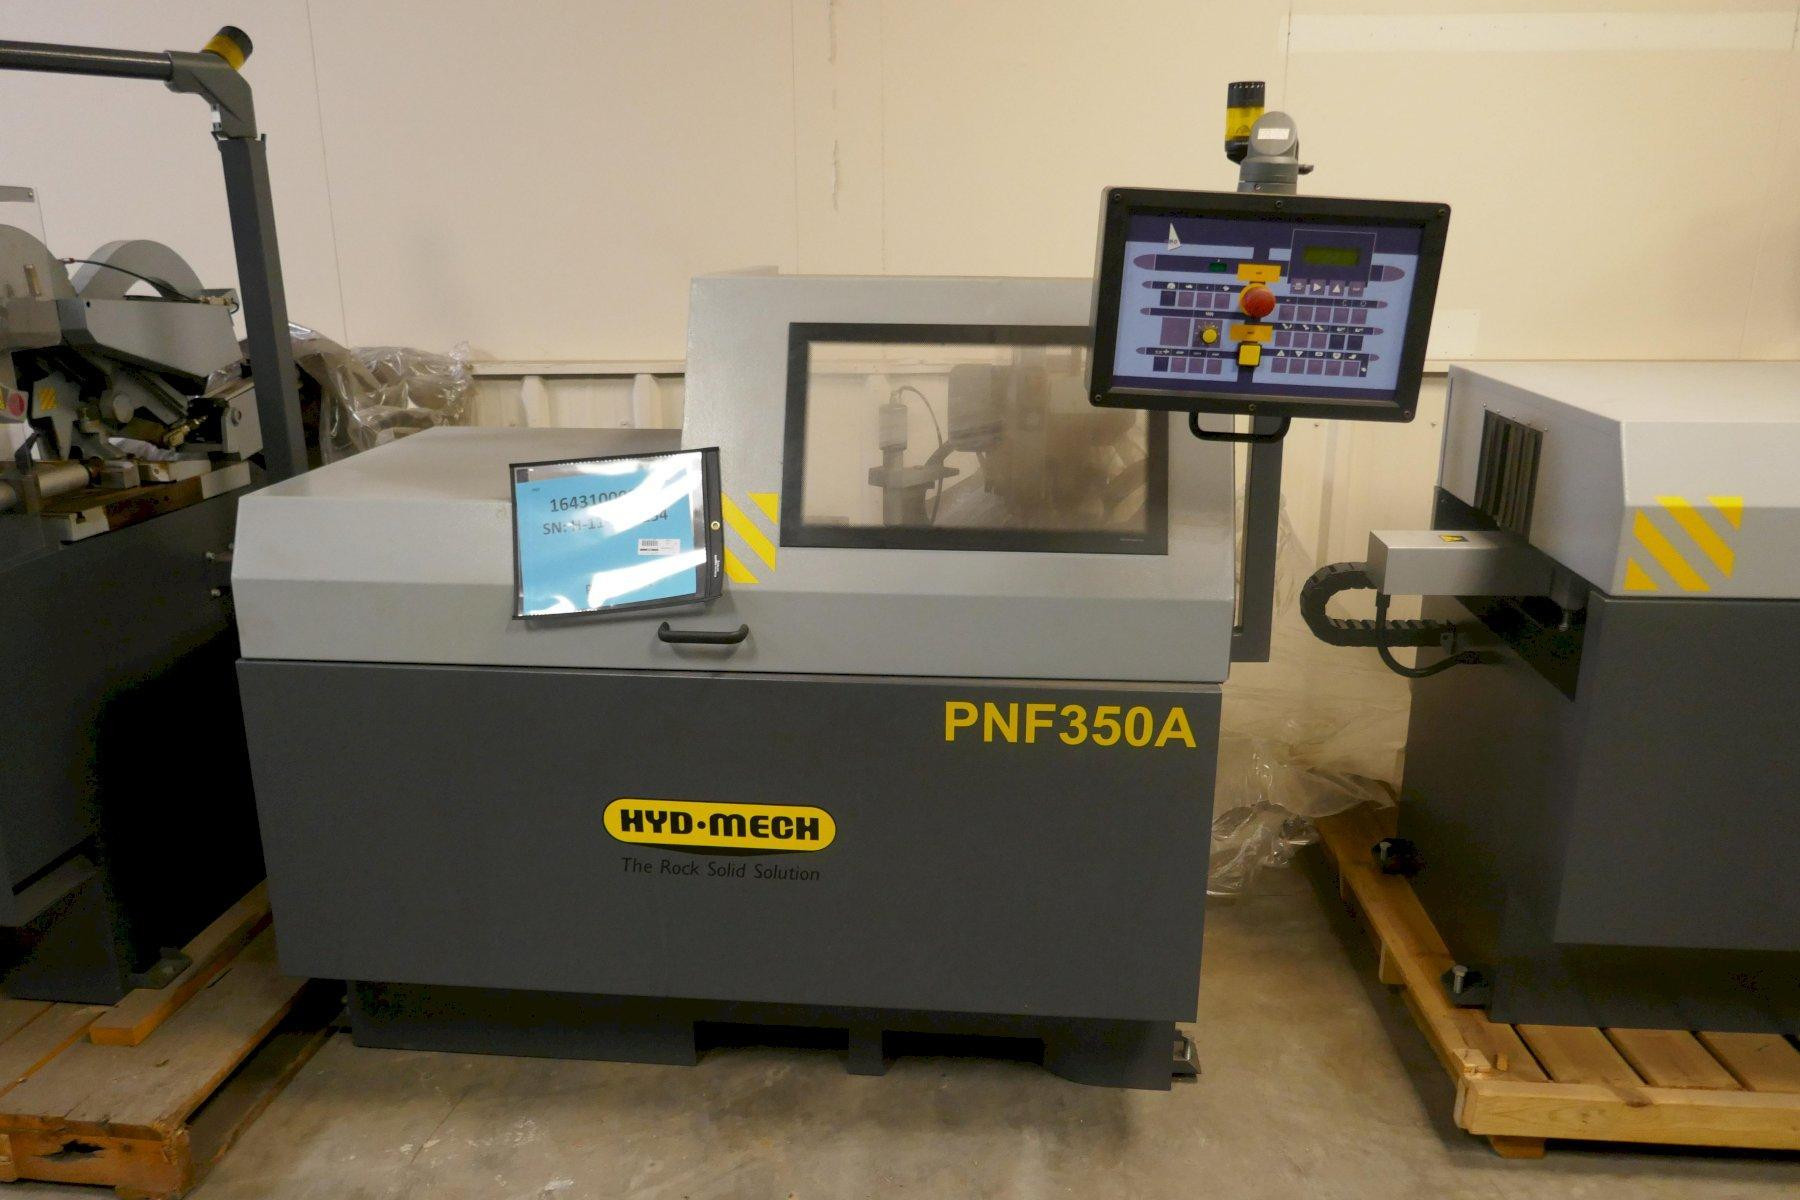 DEMO HYD-MECH MODEL PNF 350A FULLY AUTOMATIC NON-FERROUS CIRCULAR SAW (ALUMINUM), Stock # 10768, Year 2005